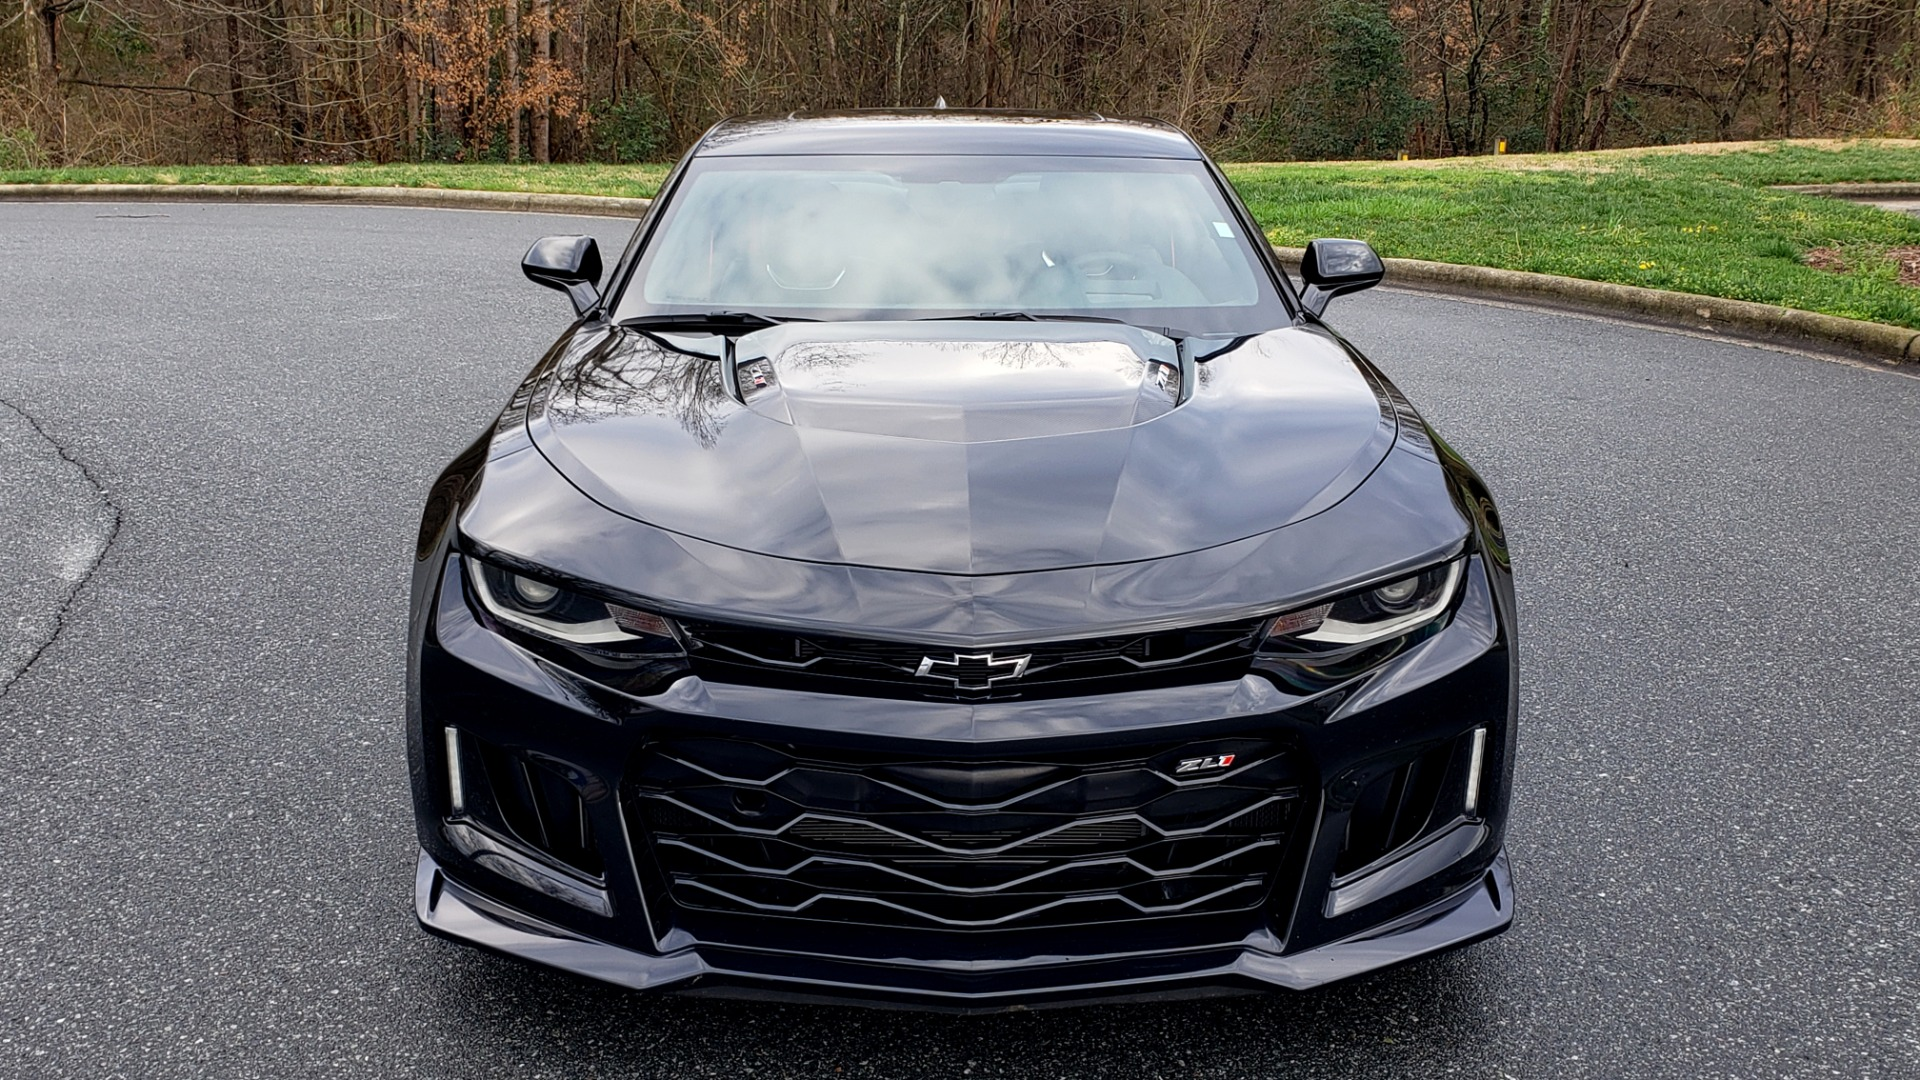 Used 2018 Chevrolet CAMARO ZL1 6.2L SUPERCHARGED V8 650 / NAV / SUNROOF / REARVIEW for sale Sold at Formula Imports in Charlotte NC 28227 27